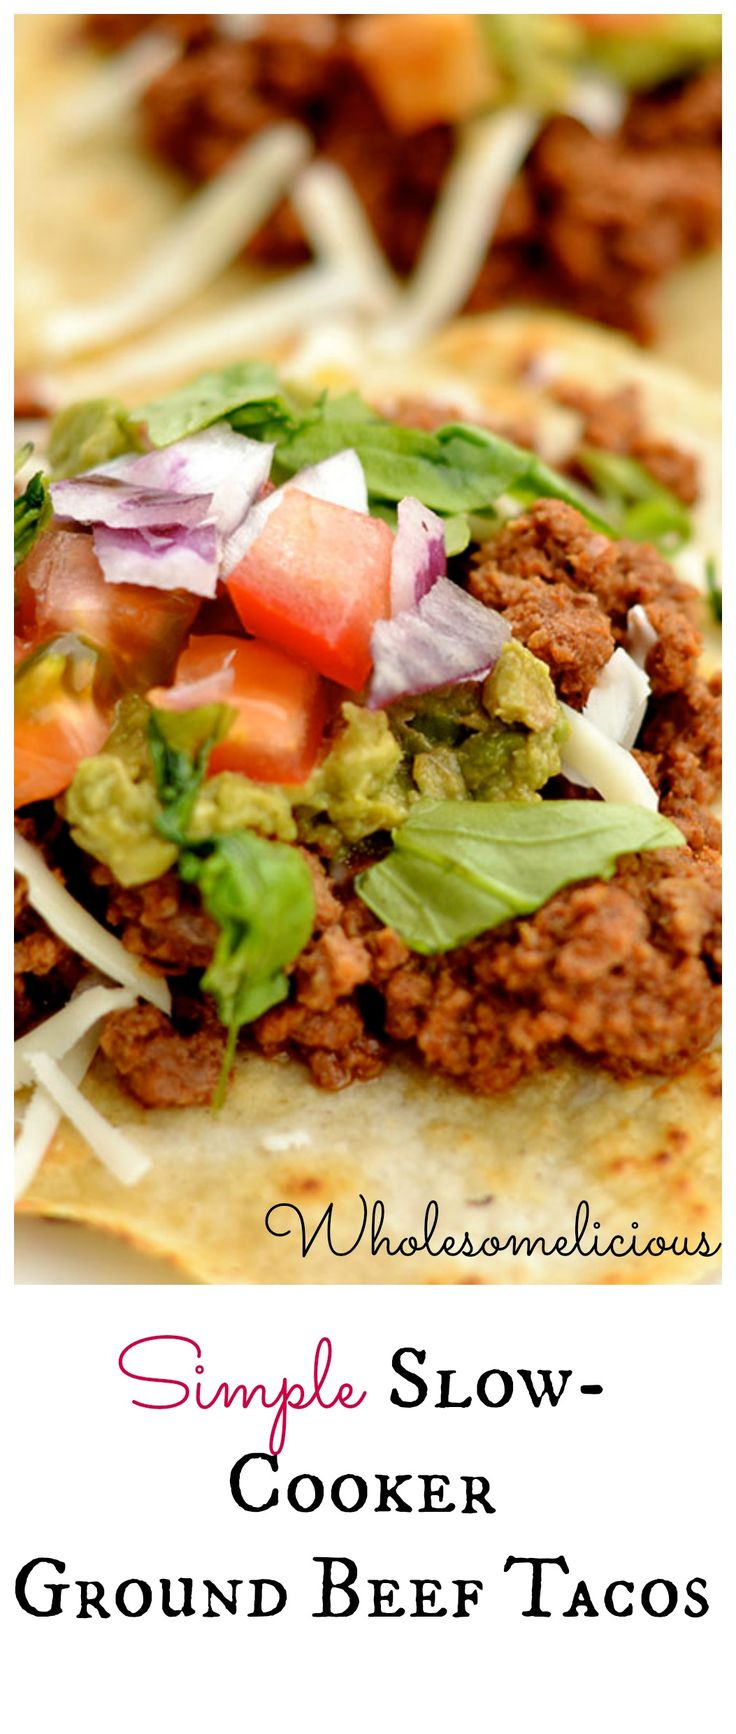 Slow-Cooker Ground Beef Tacos